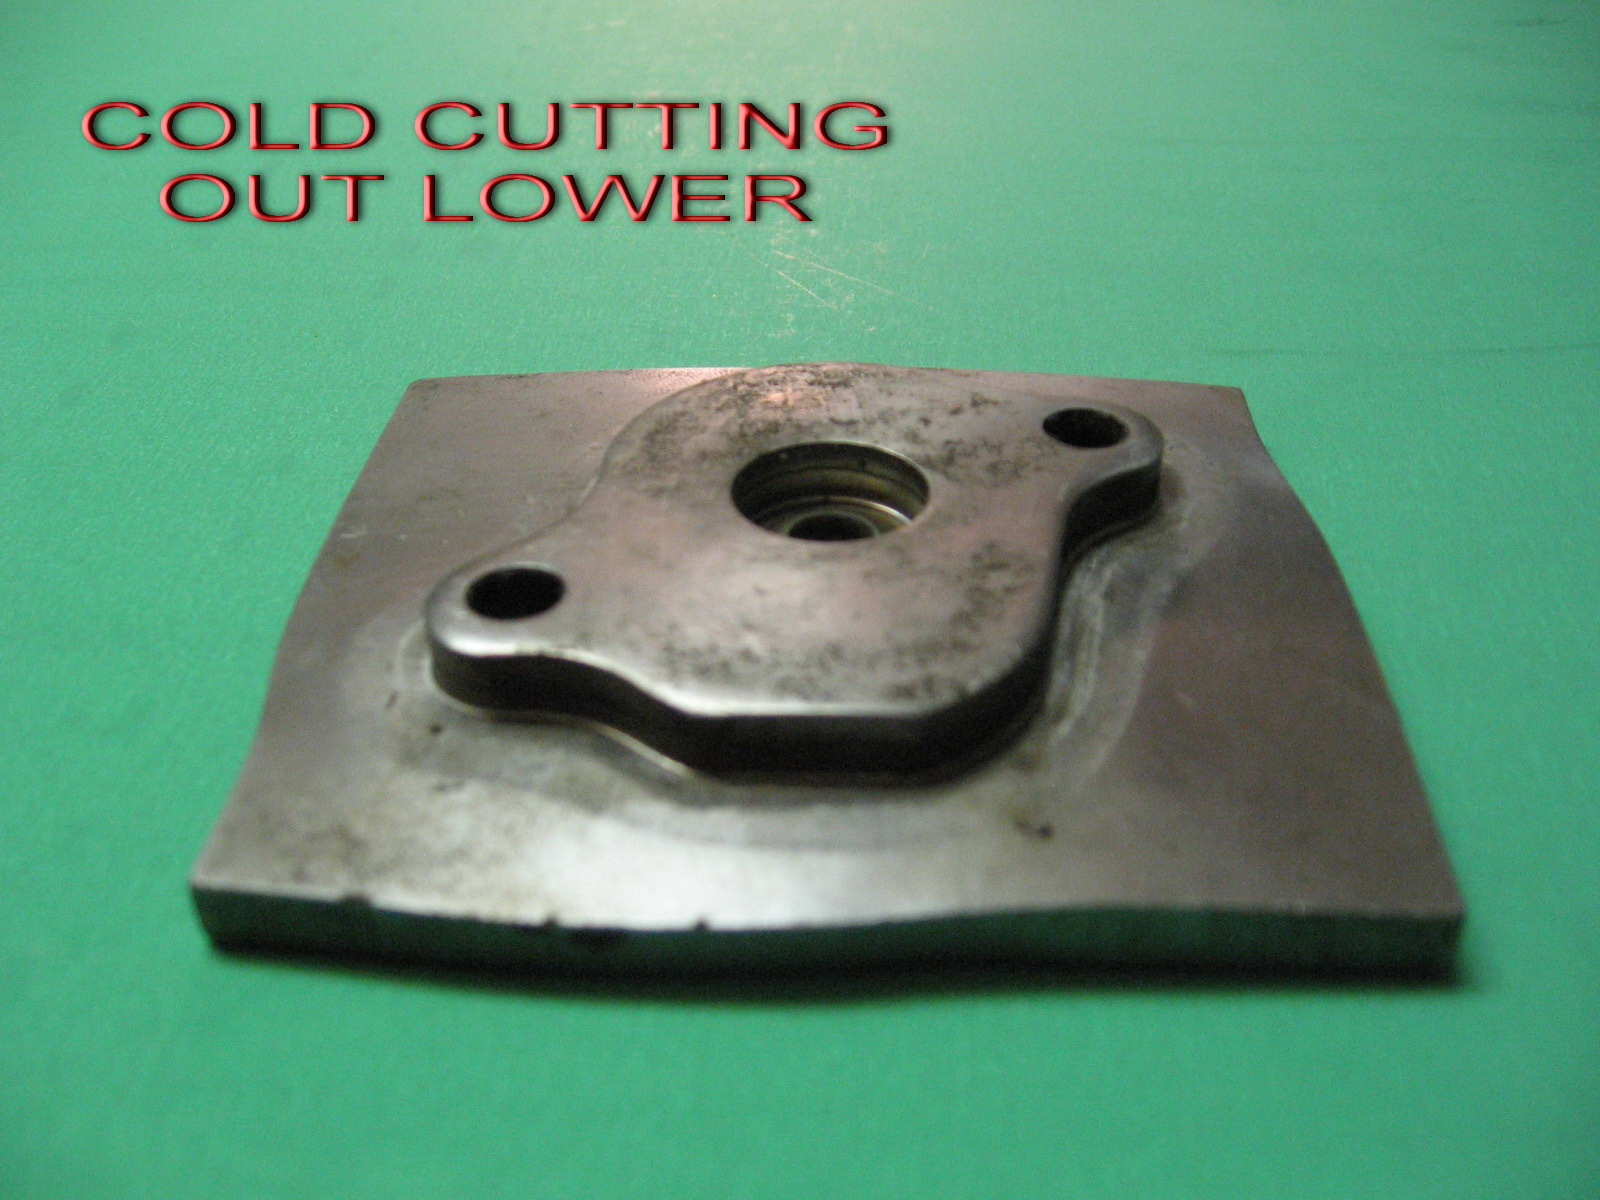 Cold cutting